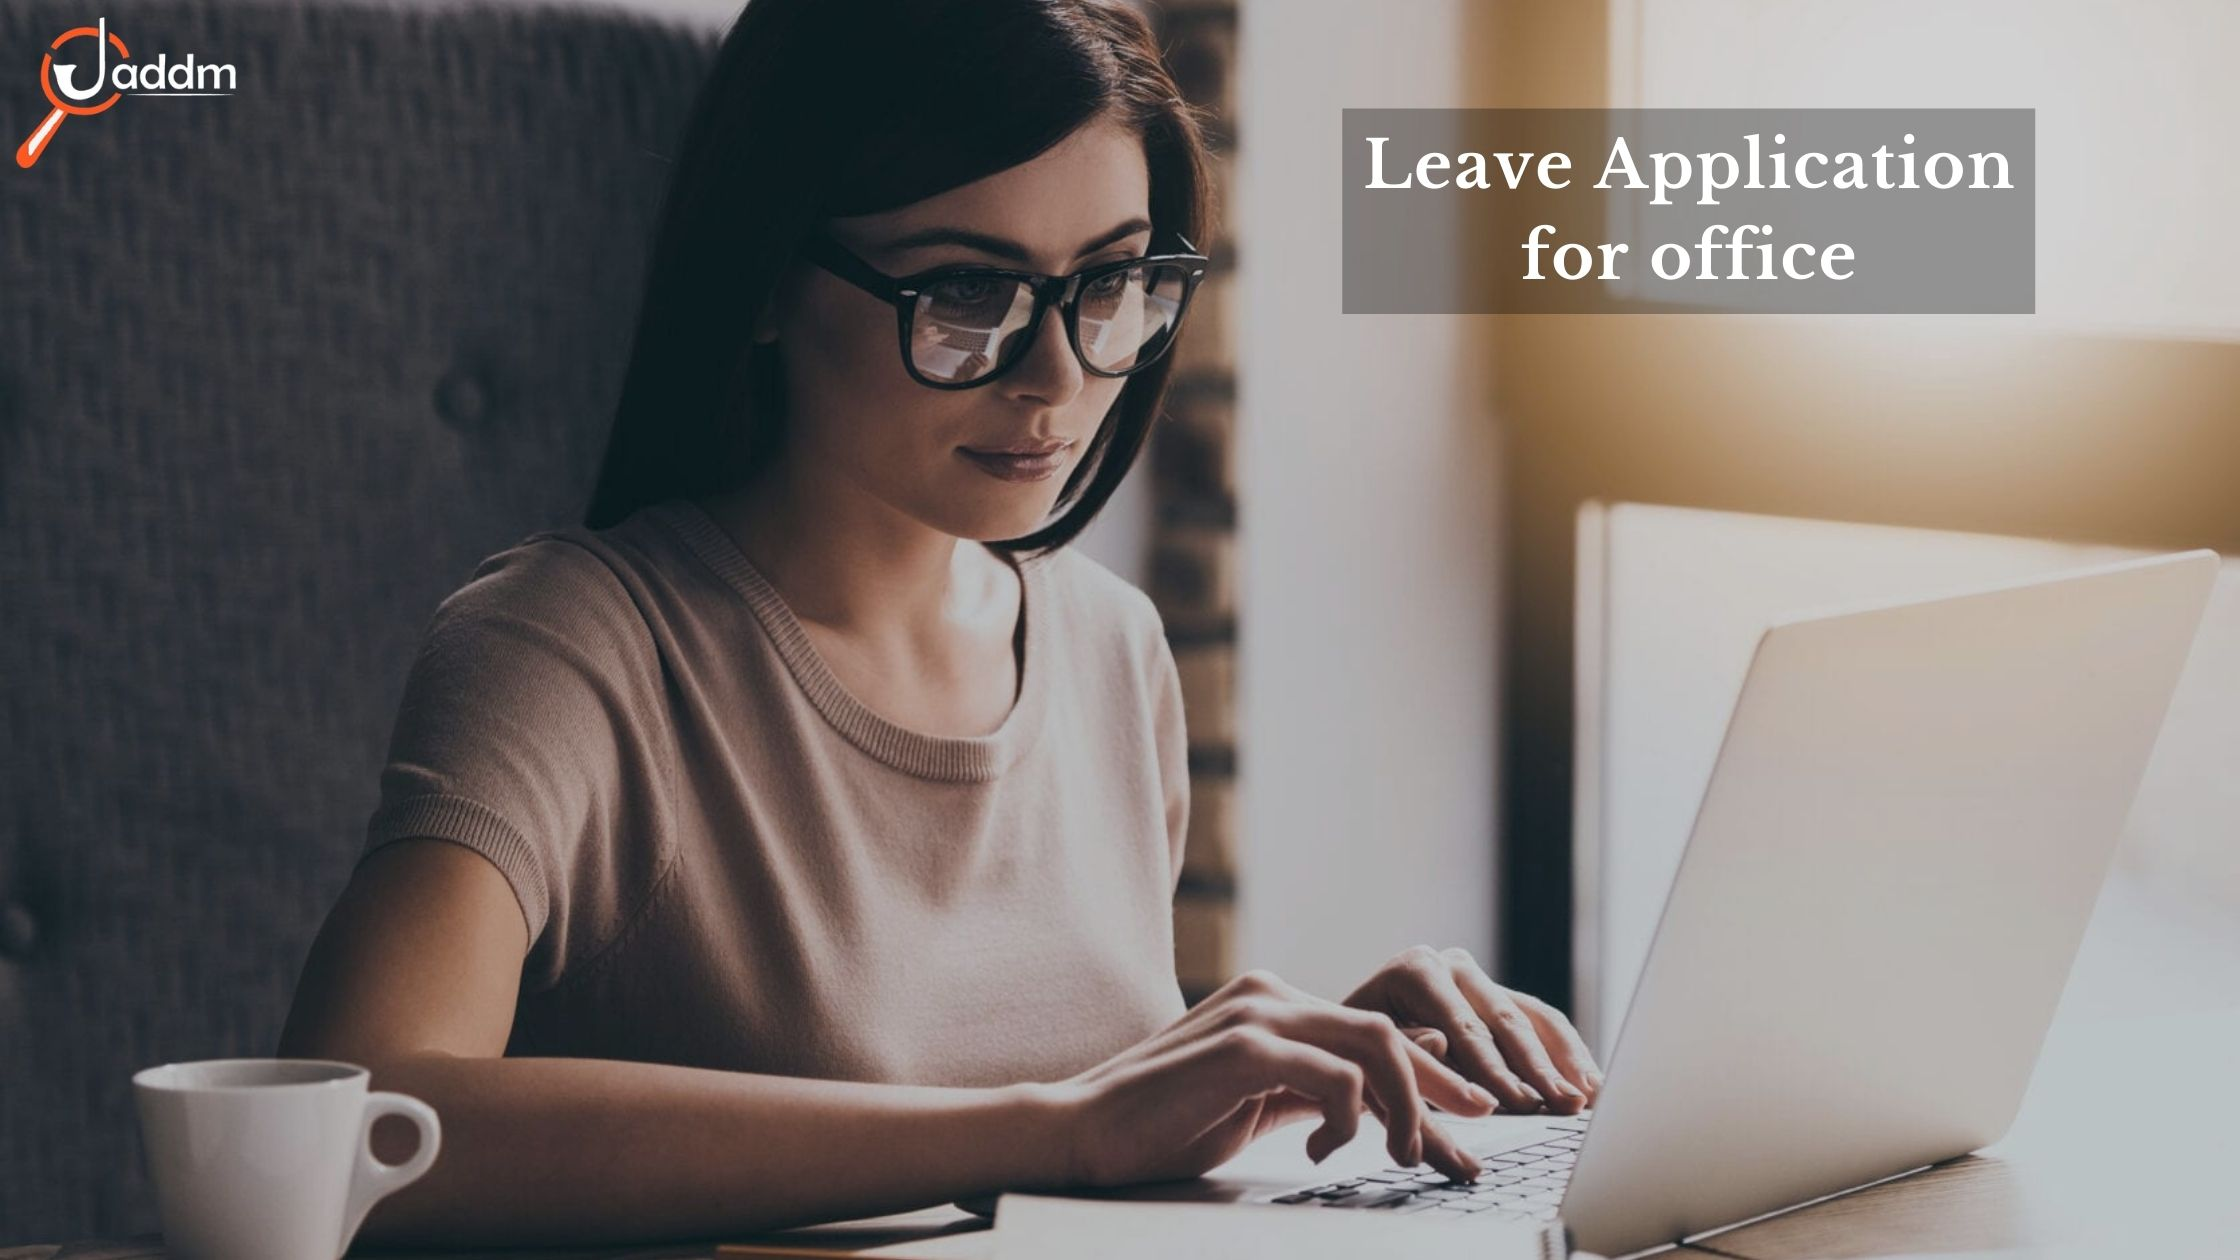 How to write a leave application for office?